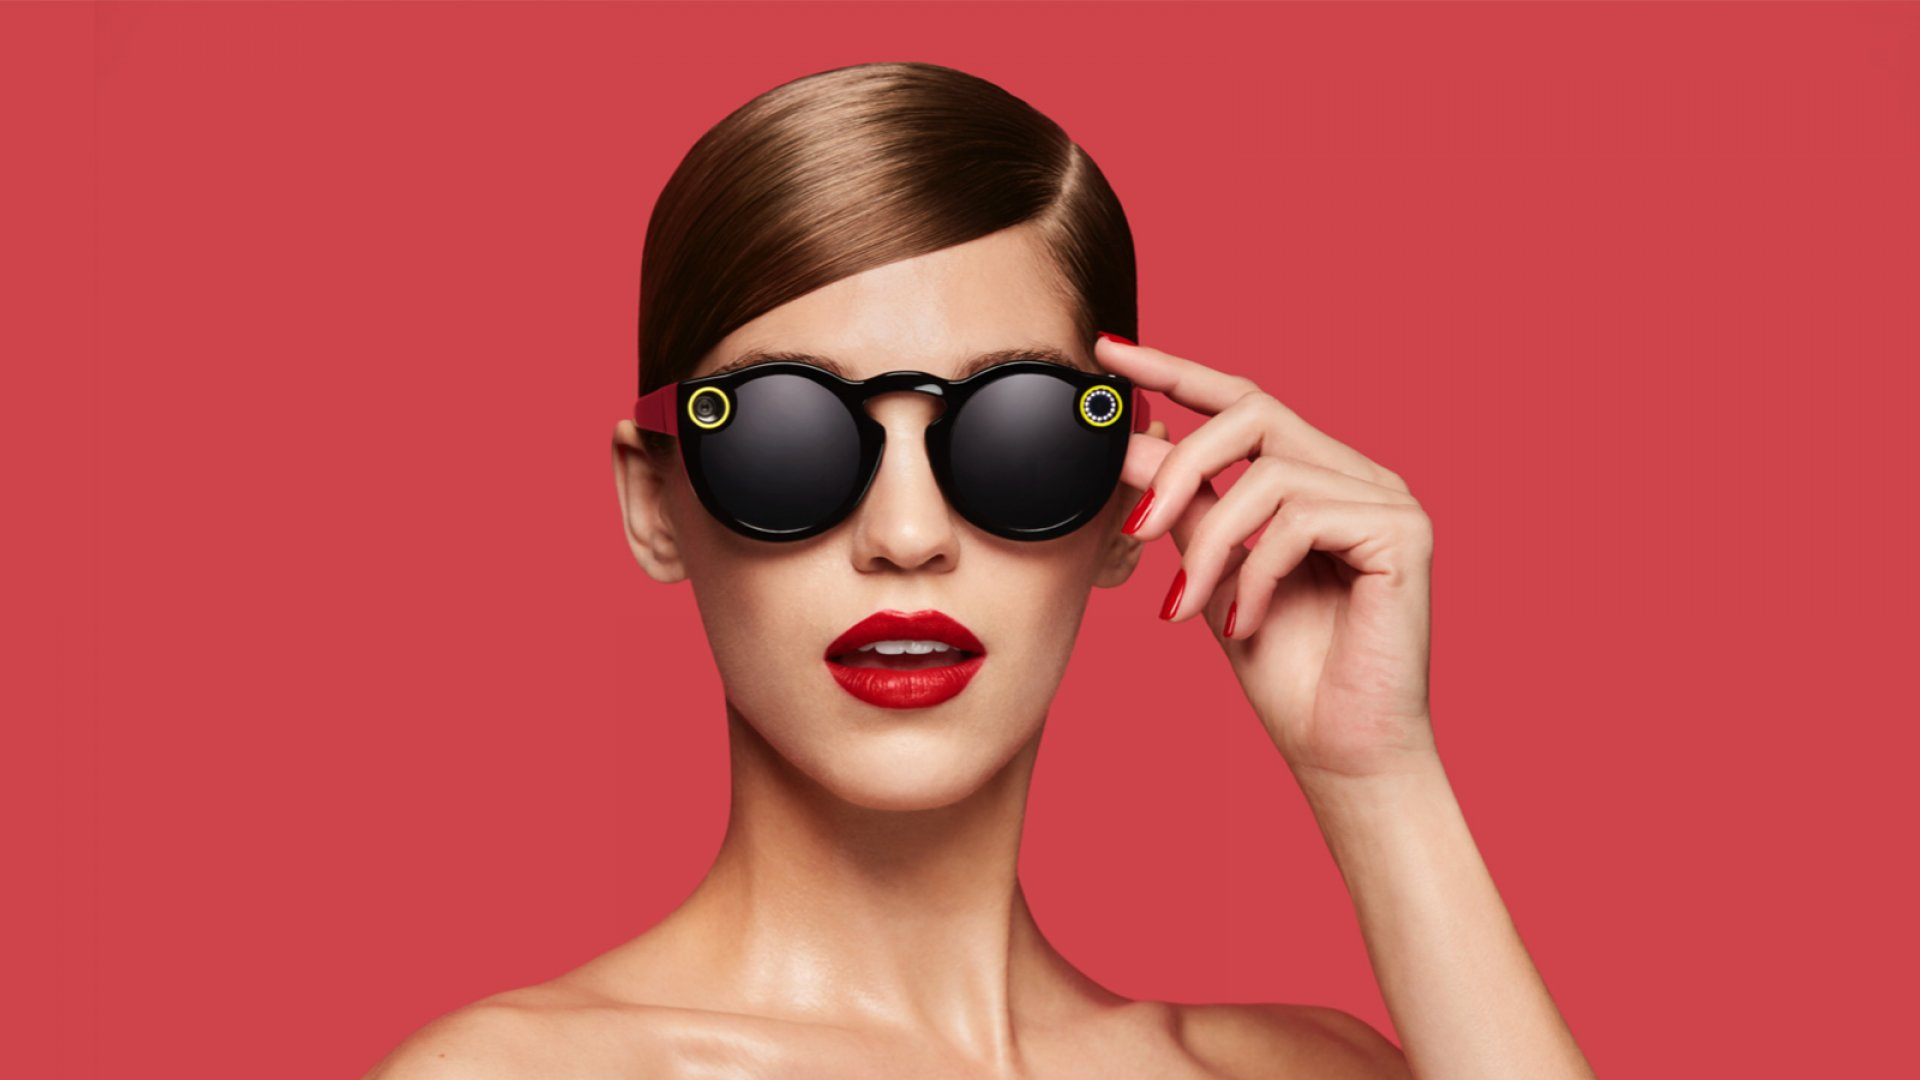 Can Snapchat Get People to Love Wearing Smart Glasses? It's About to Find Out